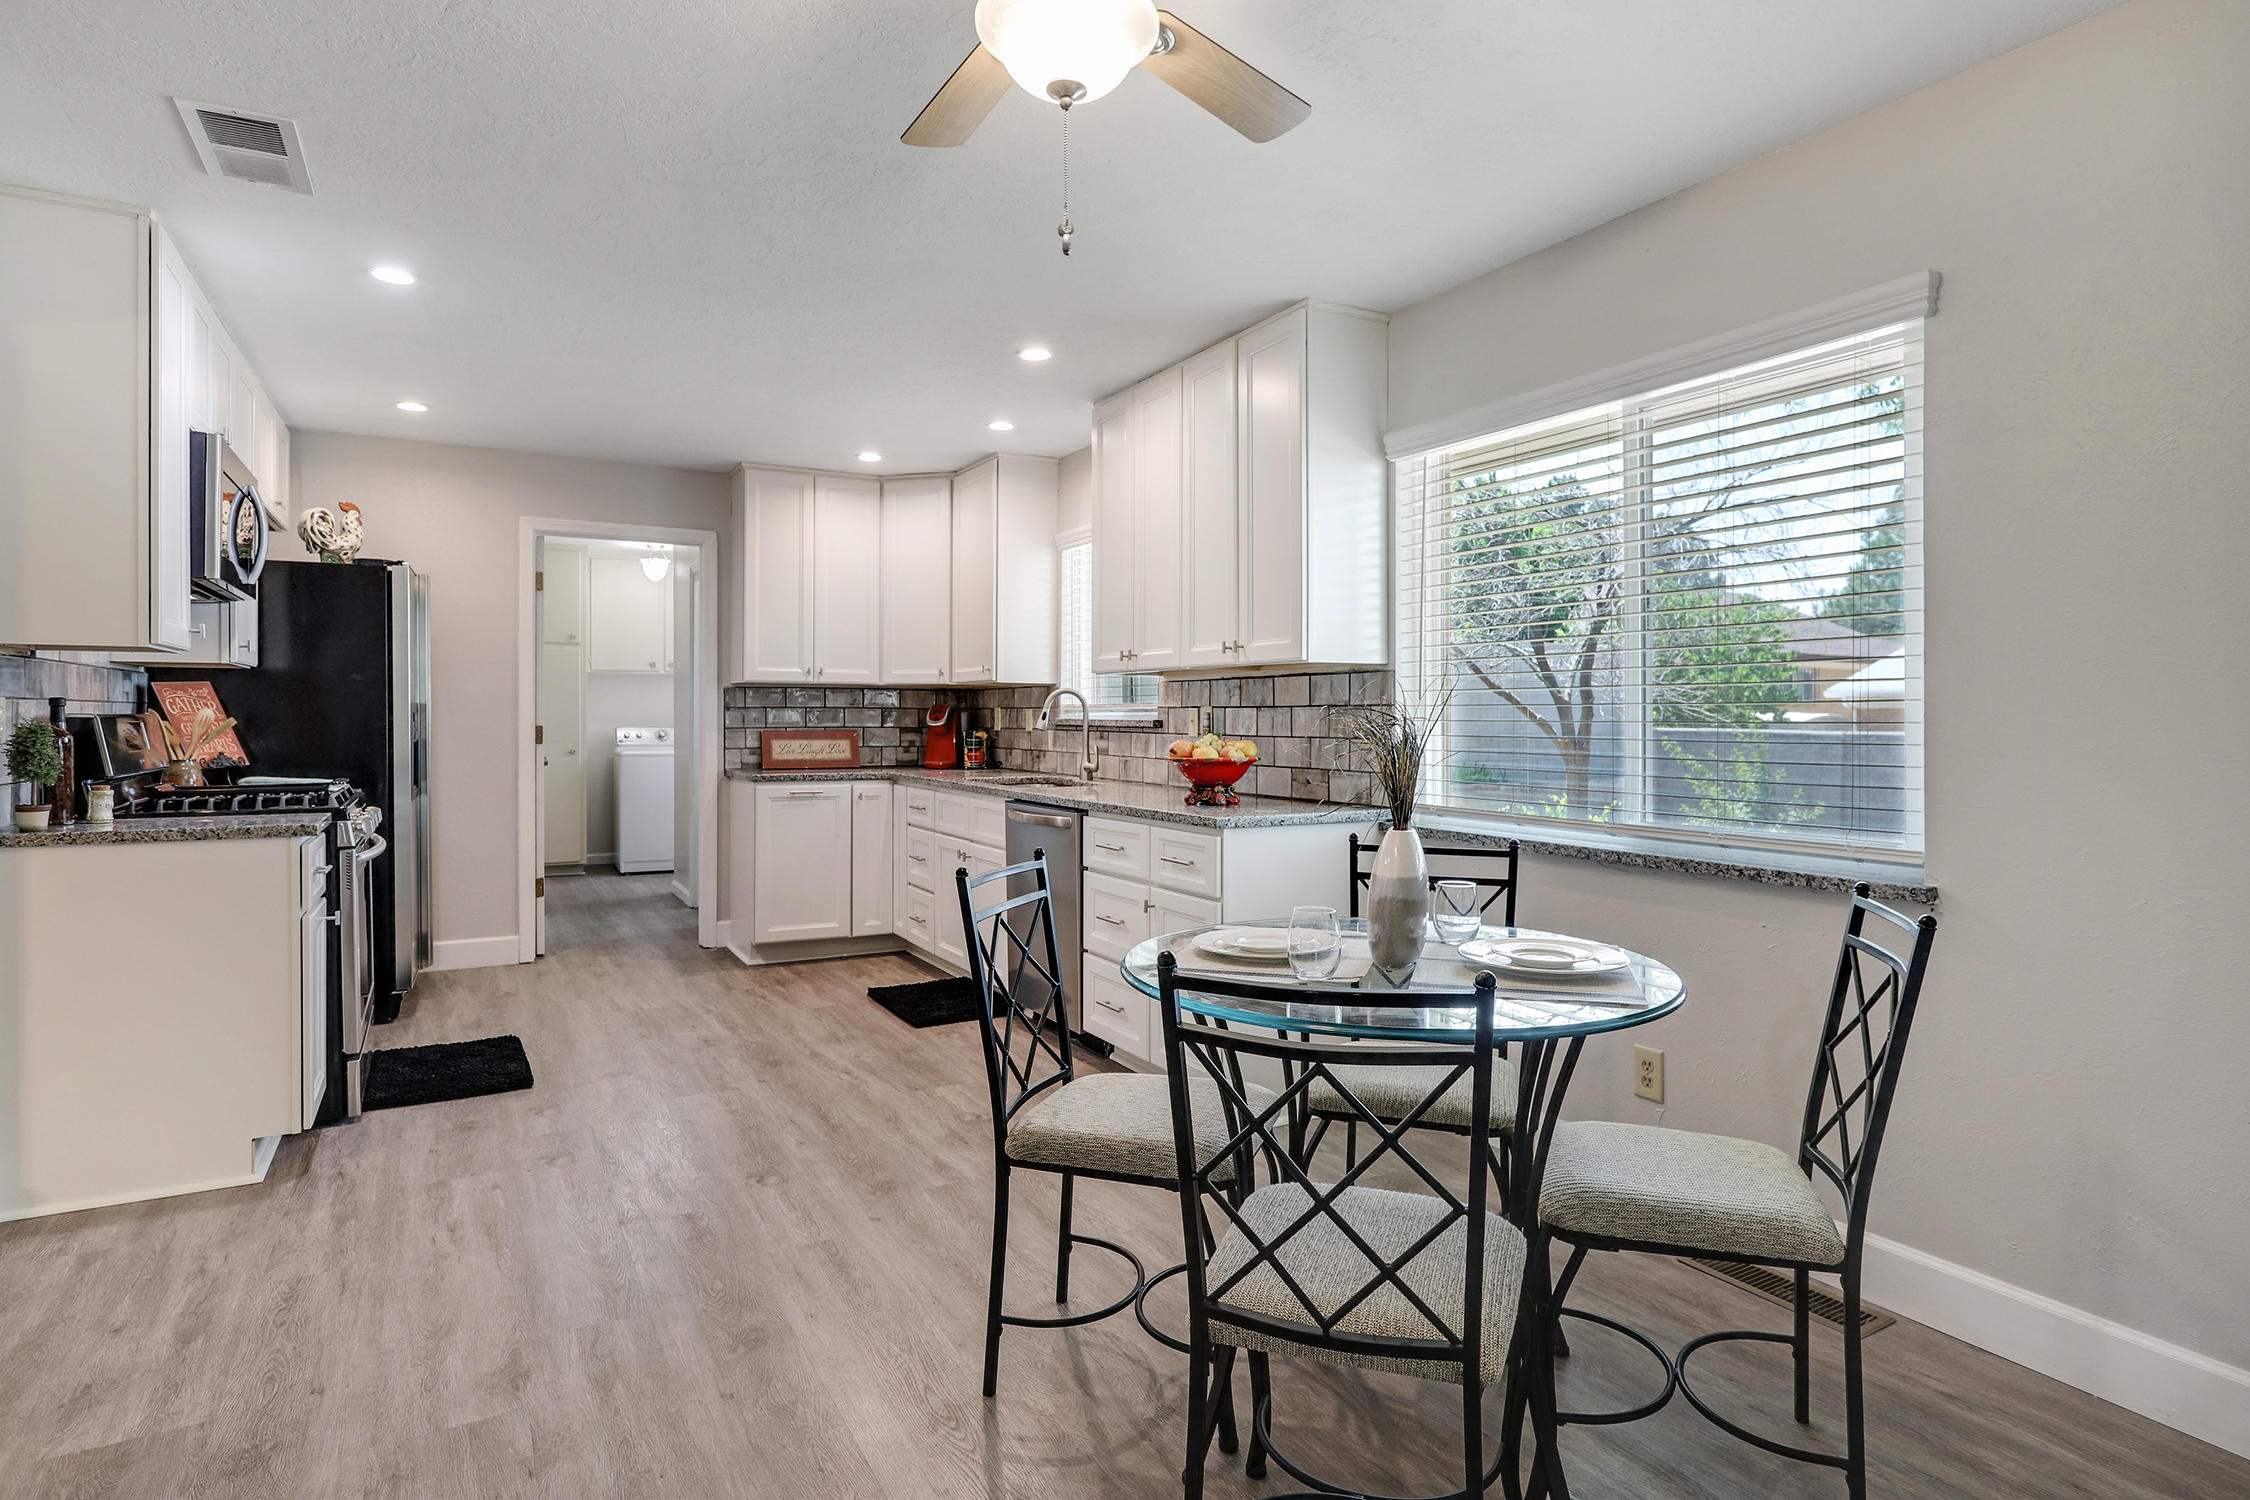 OPEN HOUSES:SATURDAY JUNE 12TH 2PM-4PMSUNDAY JUNE 13TH 2PM-4PMThis updated & stunning home located in Monterey Manor... a gorgeous and mature neighborhood in the NE Heights is a must see! Convenient access to Sandia Base, Interstate 40, Uptown, Shopping, Malls, Dining, UNM, UNM Hospital, Lovelace,  Presbyterian Hospital & local schools, take a peek at the Sandia Mountains.... It boasts FOUR large bedrooms. 3 picture perfect bathrooms, two living areas, beautifully redone kitchen, high end cabinetry... refrigerated air, redone windows, floors, new paint throughout & and has a very very nicely sized lot... Come see it before its gone!